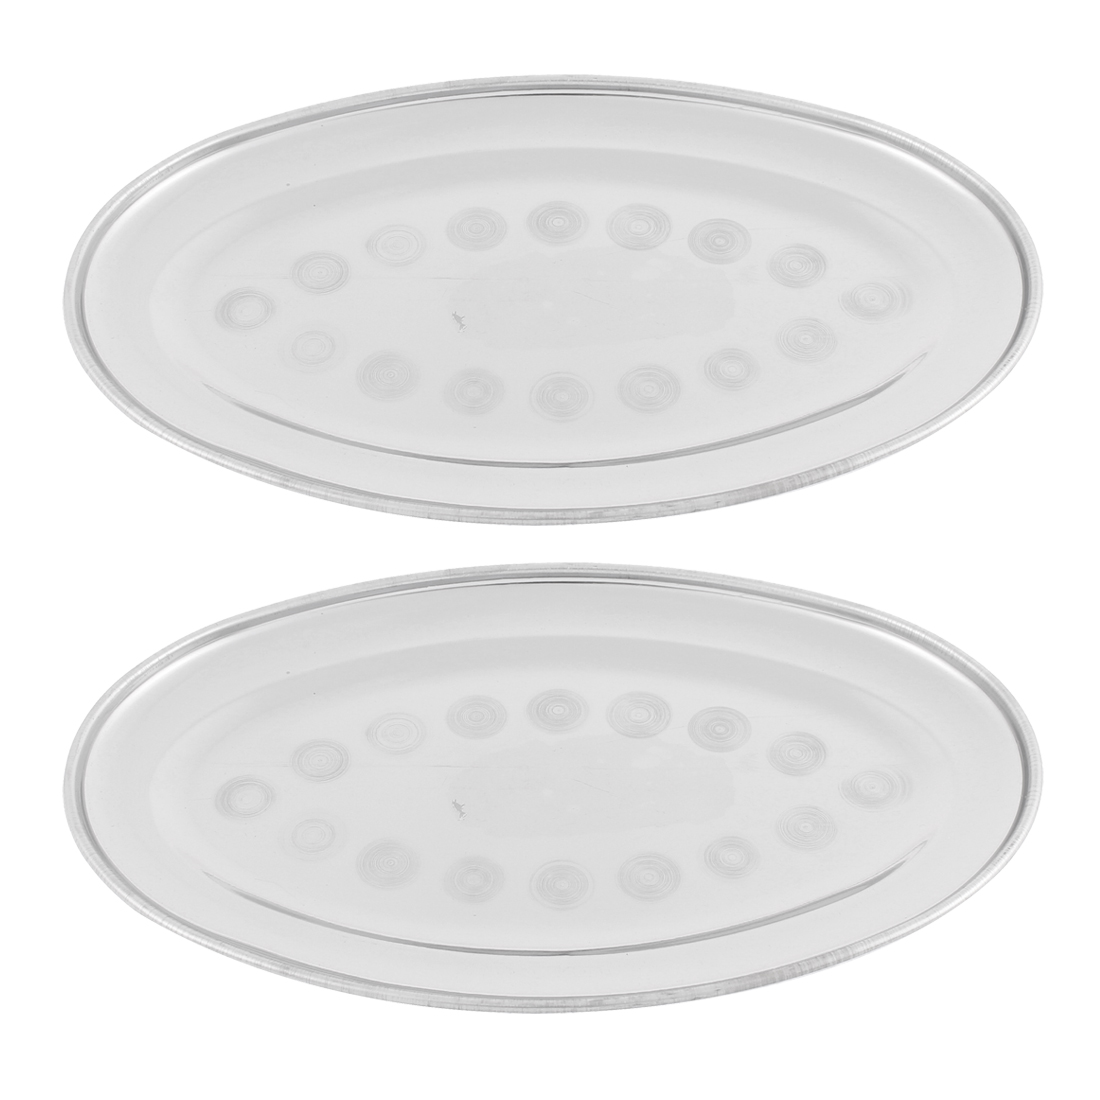 "Oval Shape Food Dish Container Plate 8.5"" Length 2PCS"